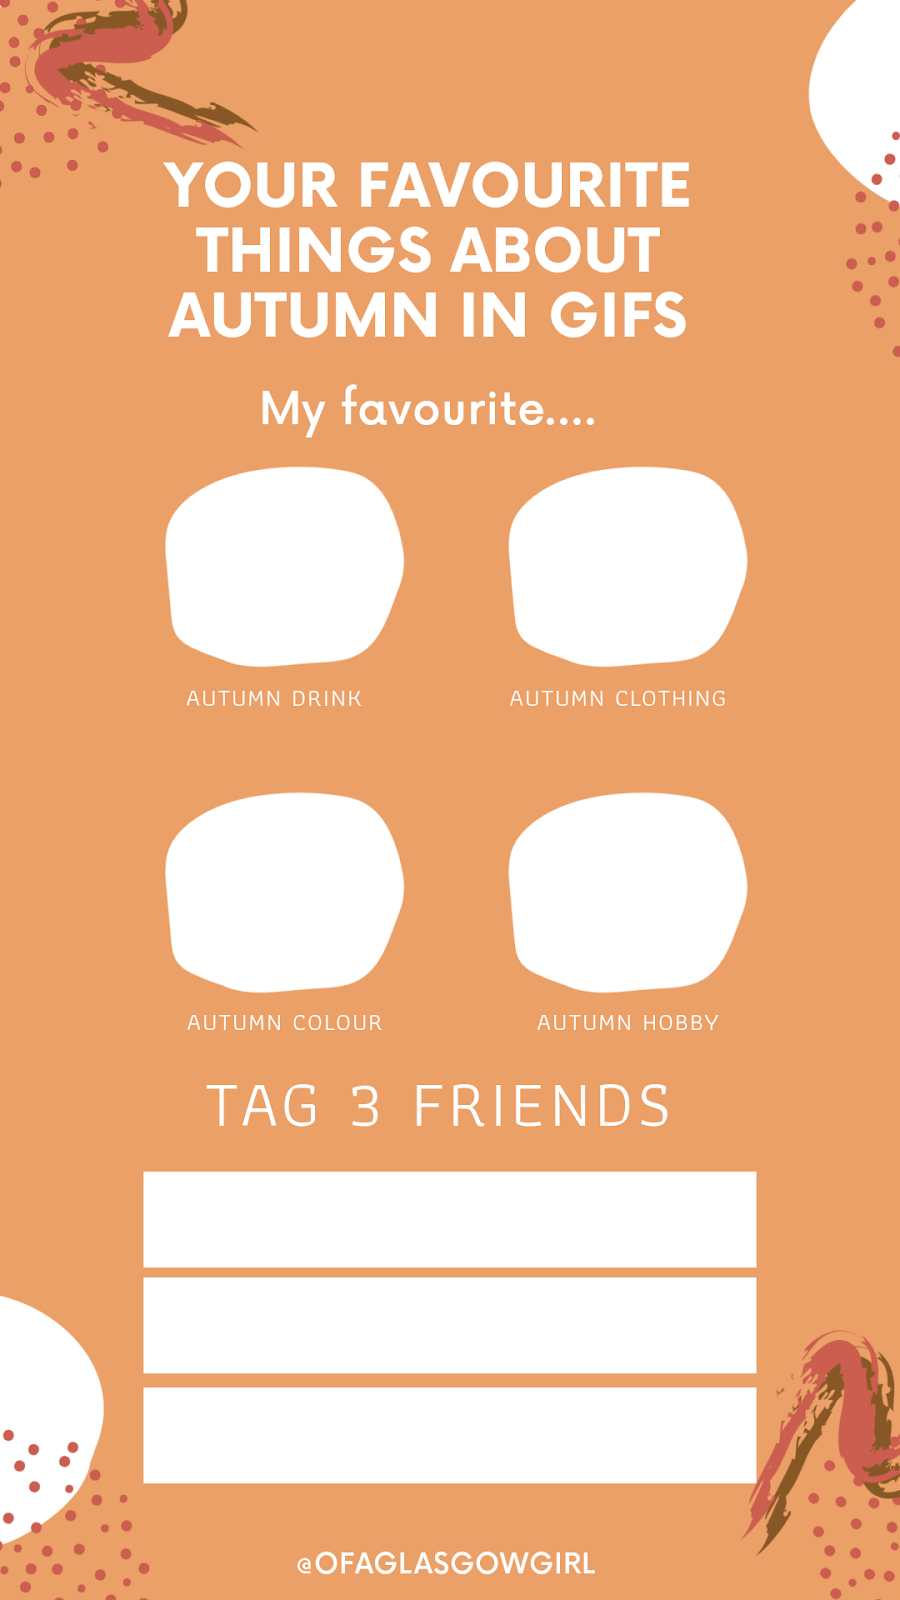 Free Instagram template - Your favourite things about autumn in gifs